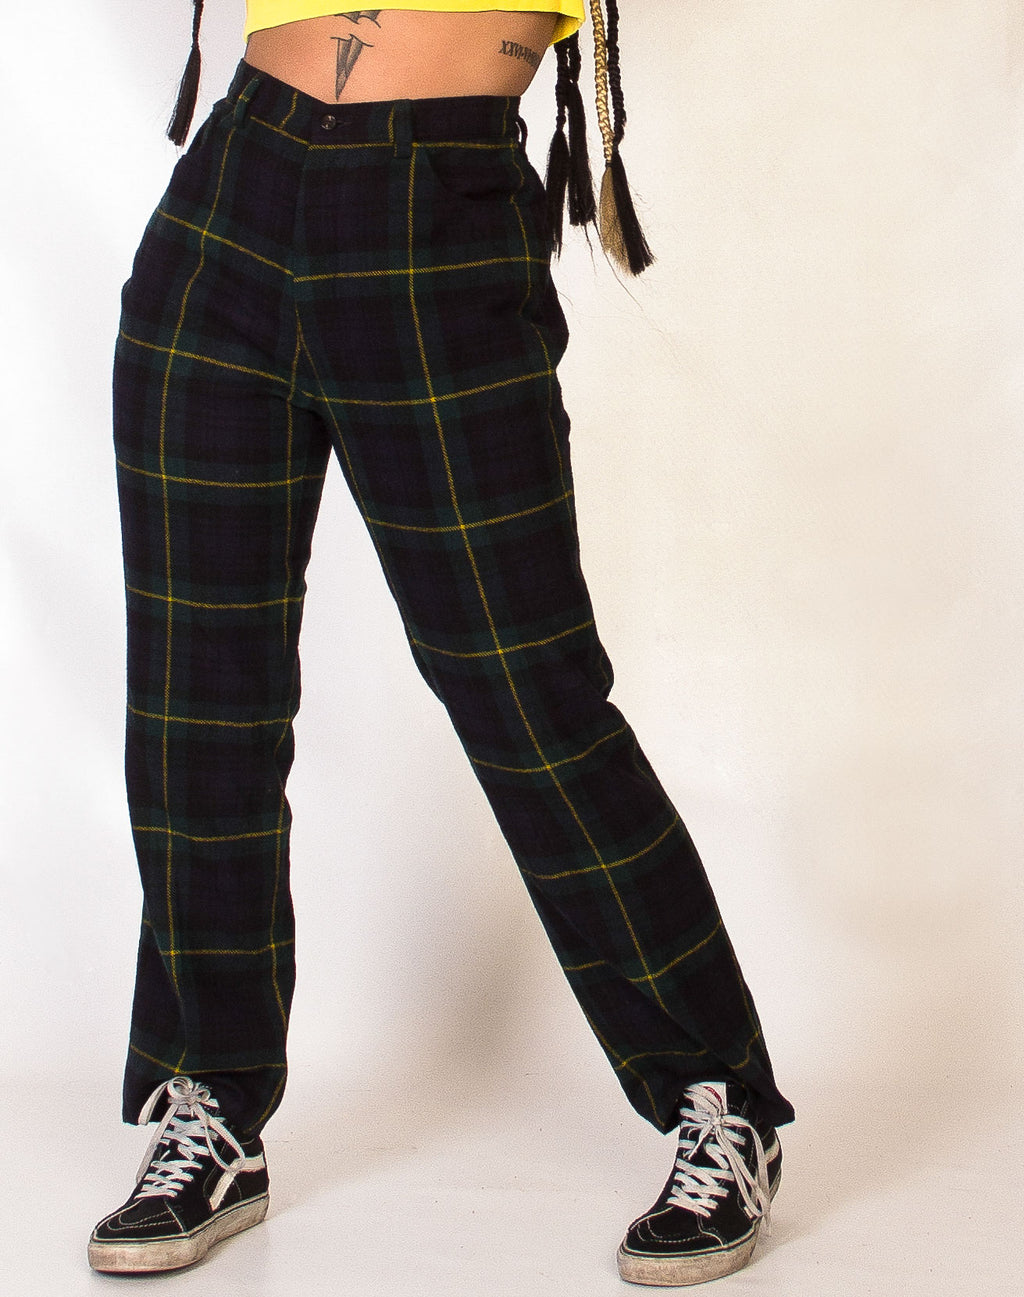 RALPH LAUREN GREEN TARTAN TROUSERS